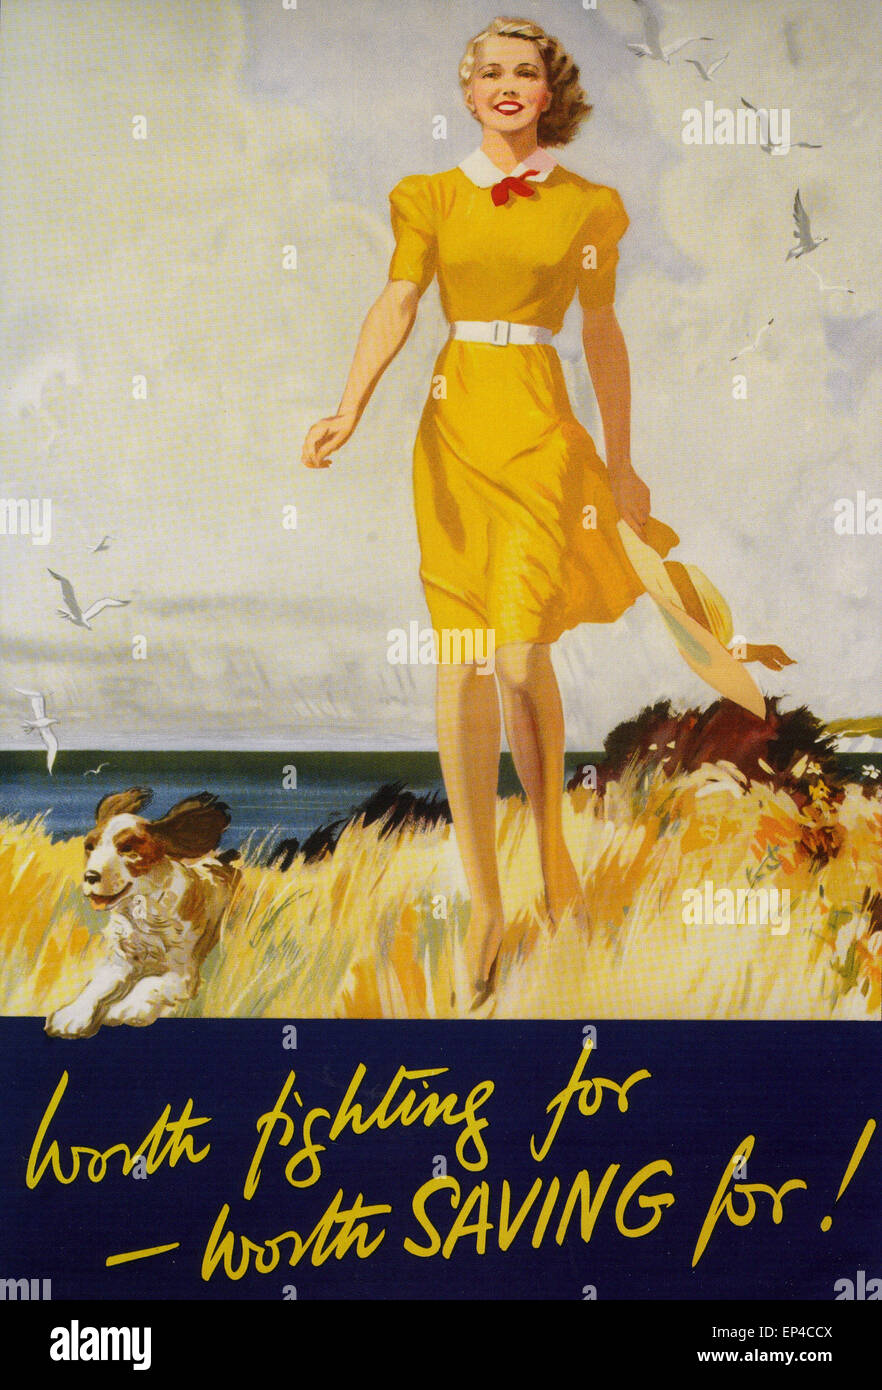 NATIONAL SAVINGS  WW2 poster - Stock Image